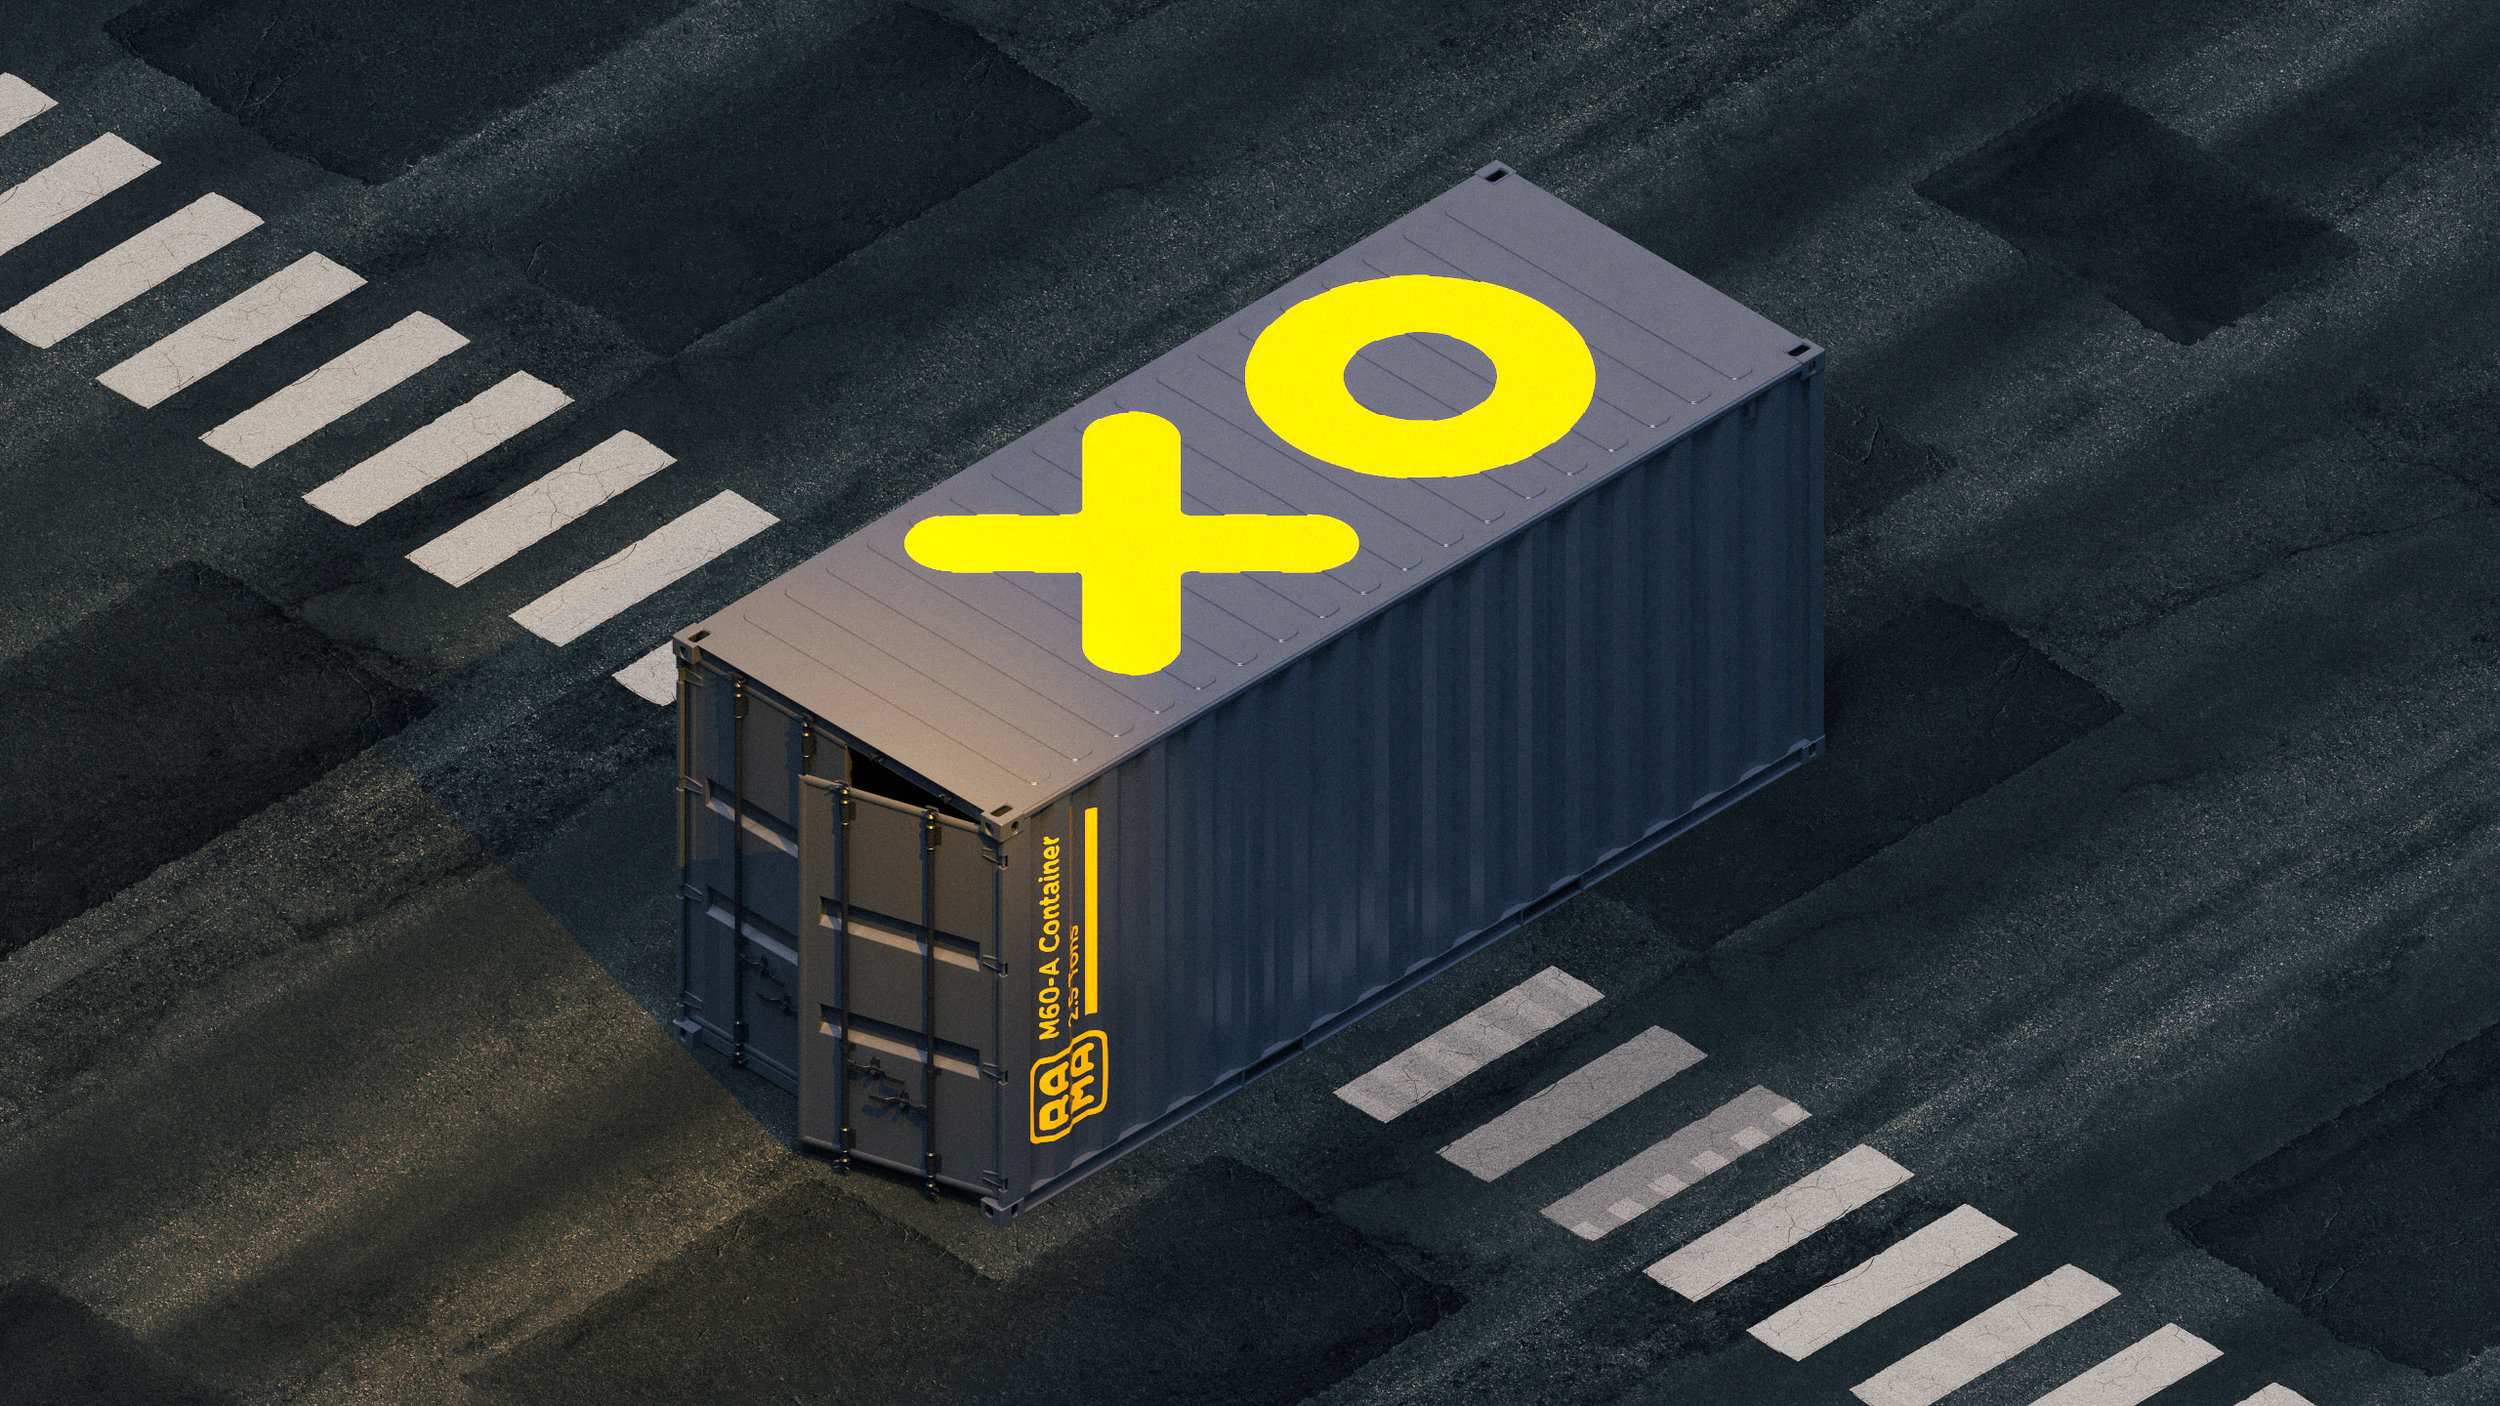 20181031-RW-CONTAINER-TEASER-01.1486.jpg